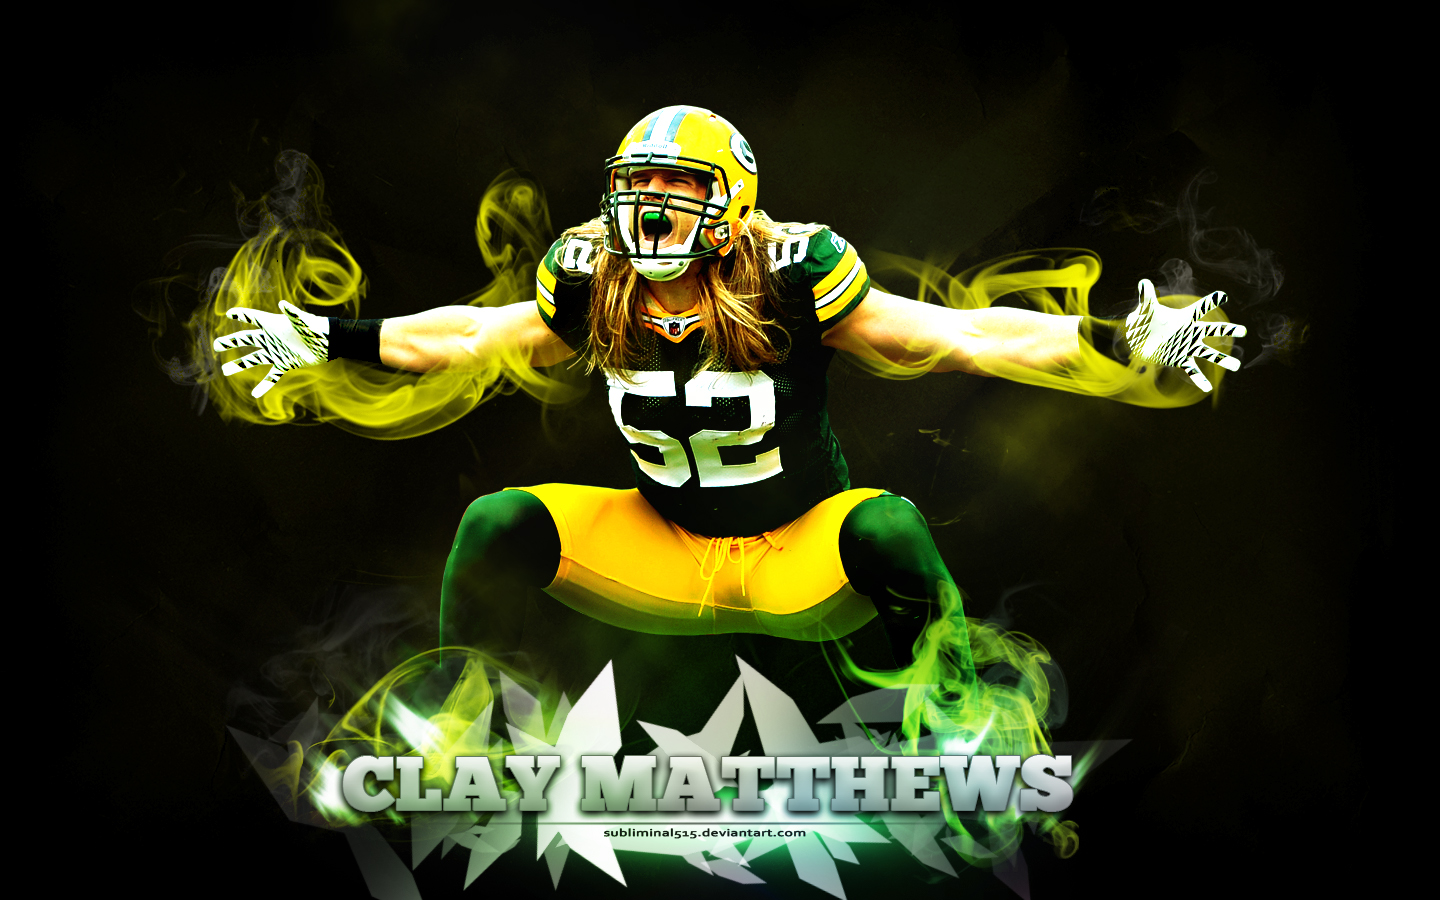 Packer-Background-For-Computer-forum-source-for-windows-pc-computer-desktop-football-desktop-file-wallpaper-wp4809305